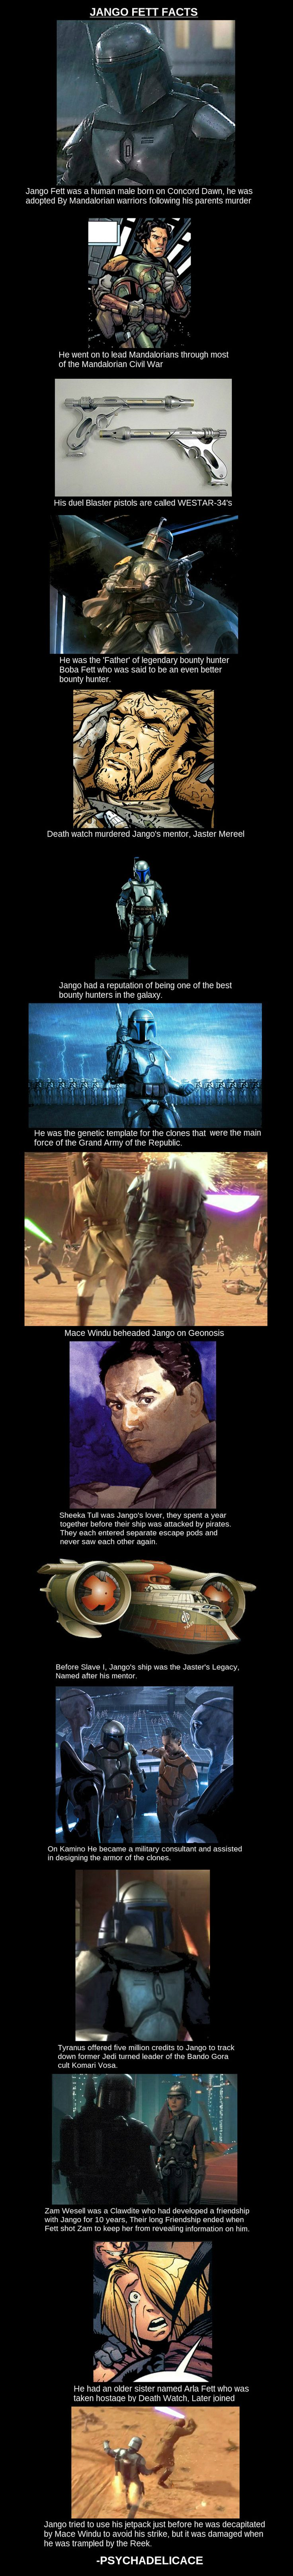 Jango in a whole new light. But I knew all of these already